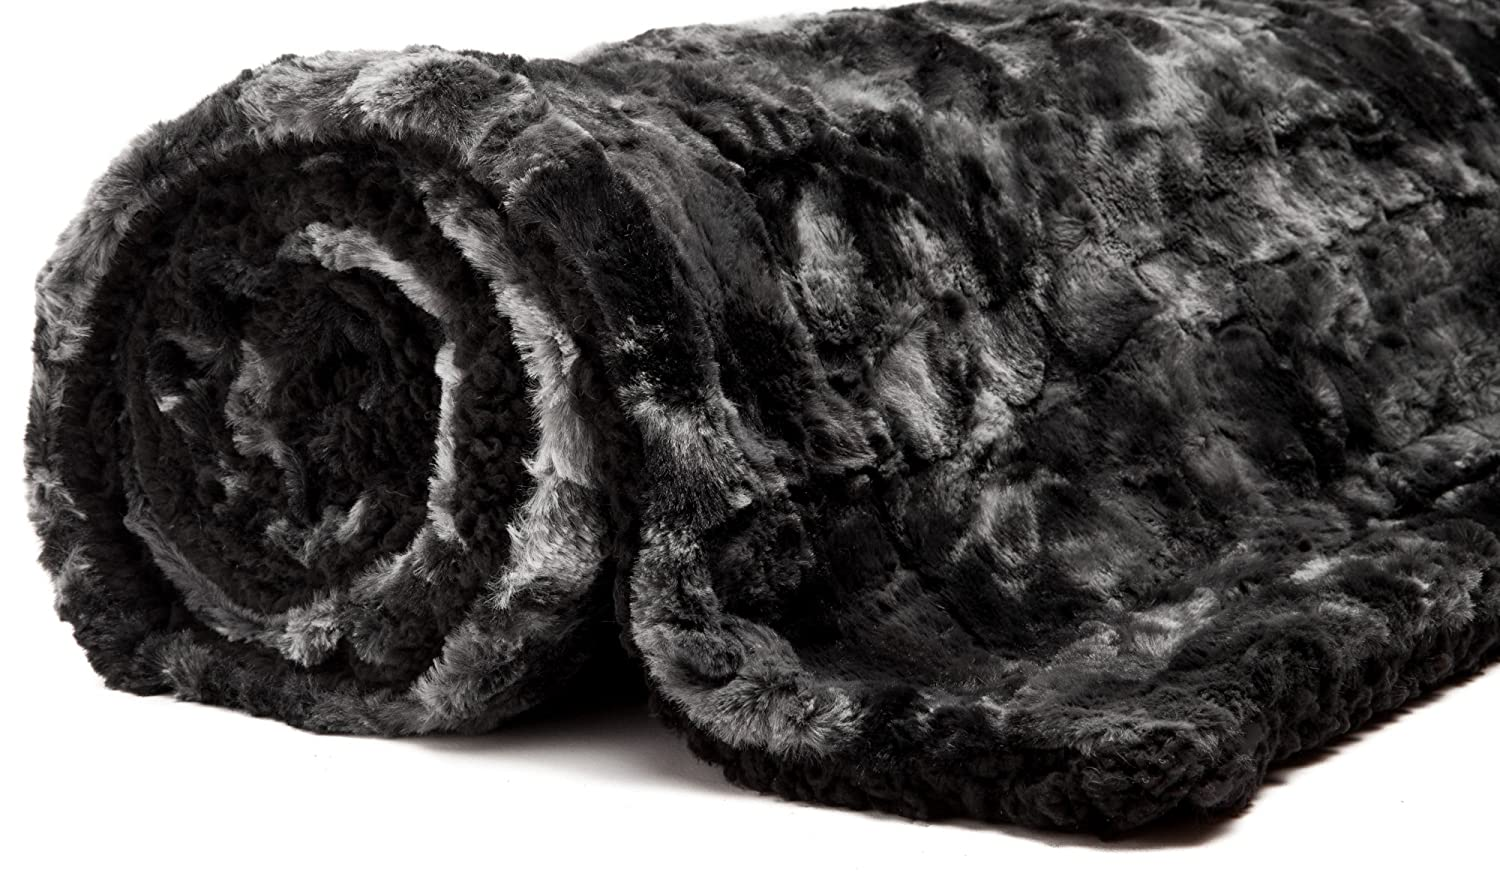 50 x 65 - Dark Grey PurchaseCorner SYNCHKG079886 Chanasya Faux Fur Throw Blanket Super Soft Fuzzy Light Weight Luxurious Cozy Warm Fluffy Plush Hypoallergenic Blanket for Bed Couch Chair Fall Winter Spring Living Room